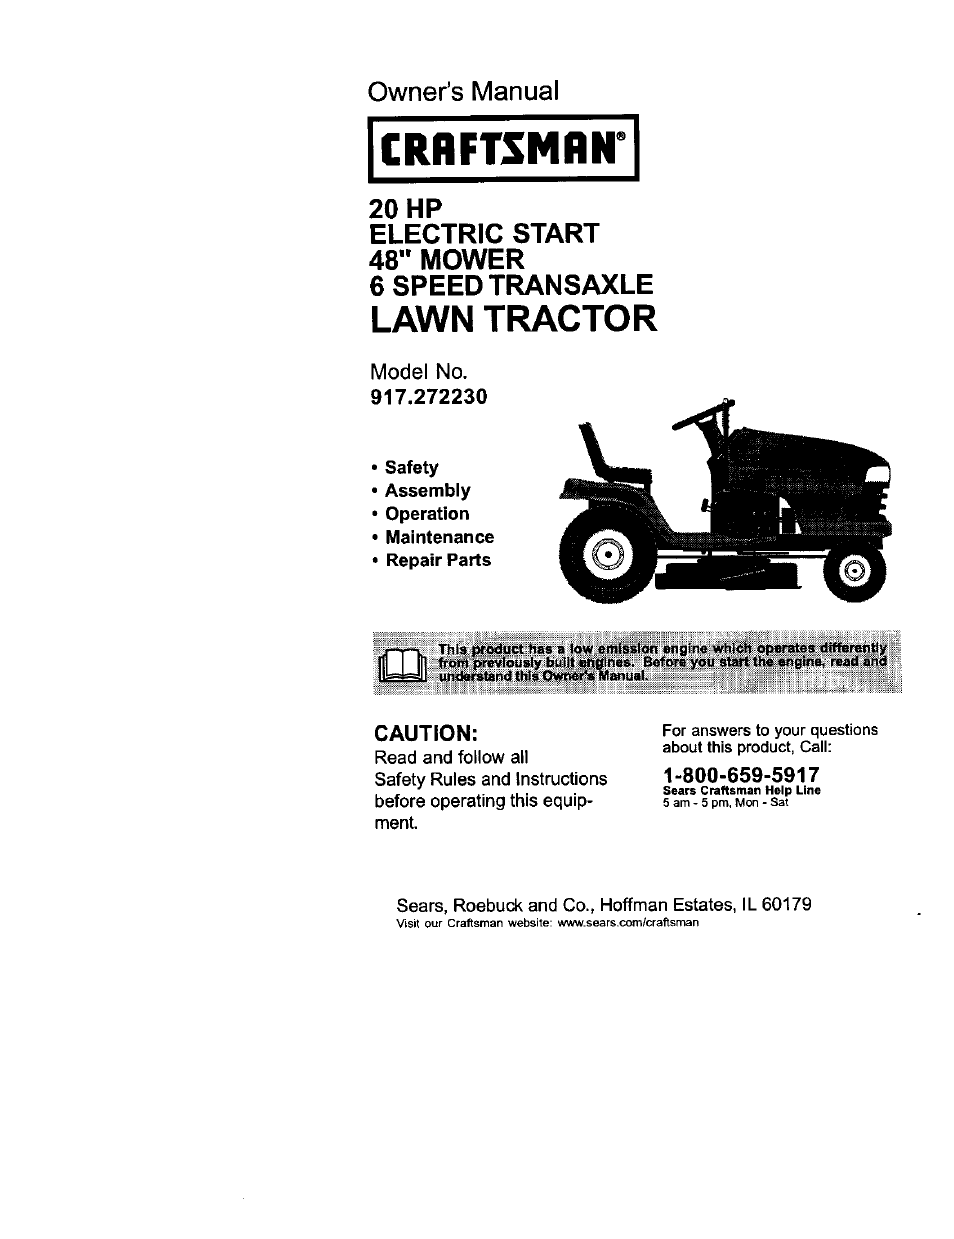 Craftsman 917 272230 User Manual